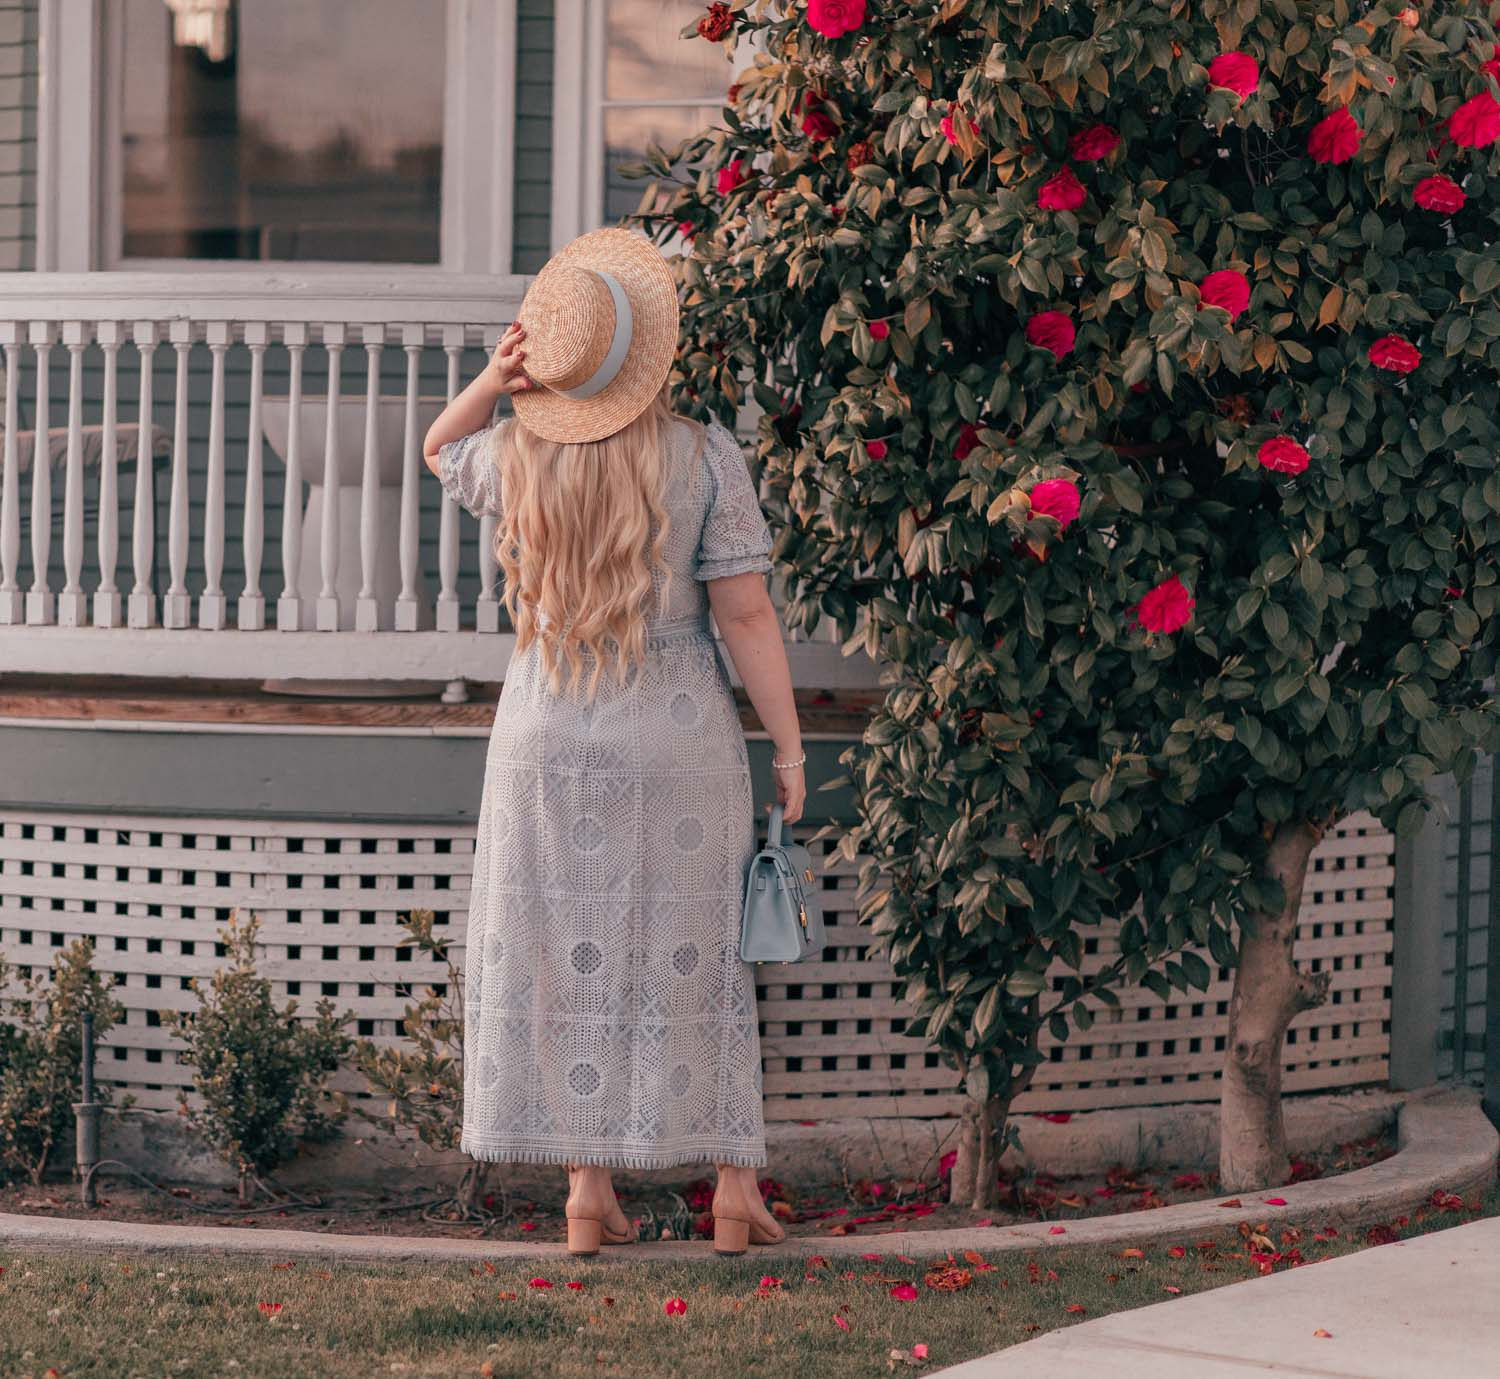 Girly Fashion Blogger Elizabeth Hugen of Lizzie in Lace shares a Feminine Cottagecore Outfit Idea for Spring